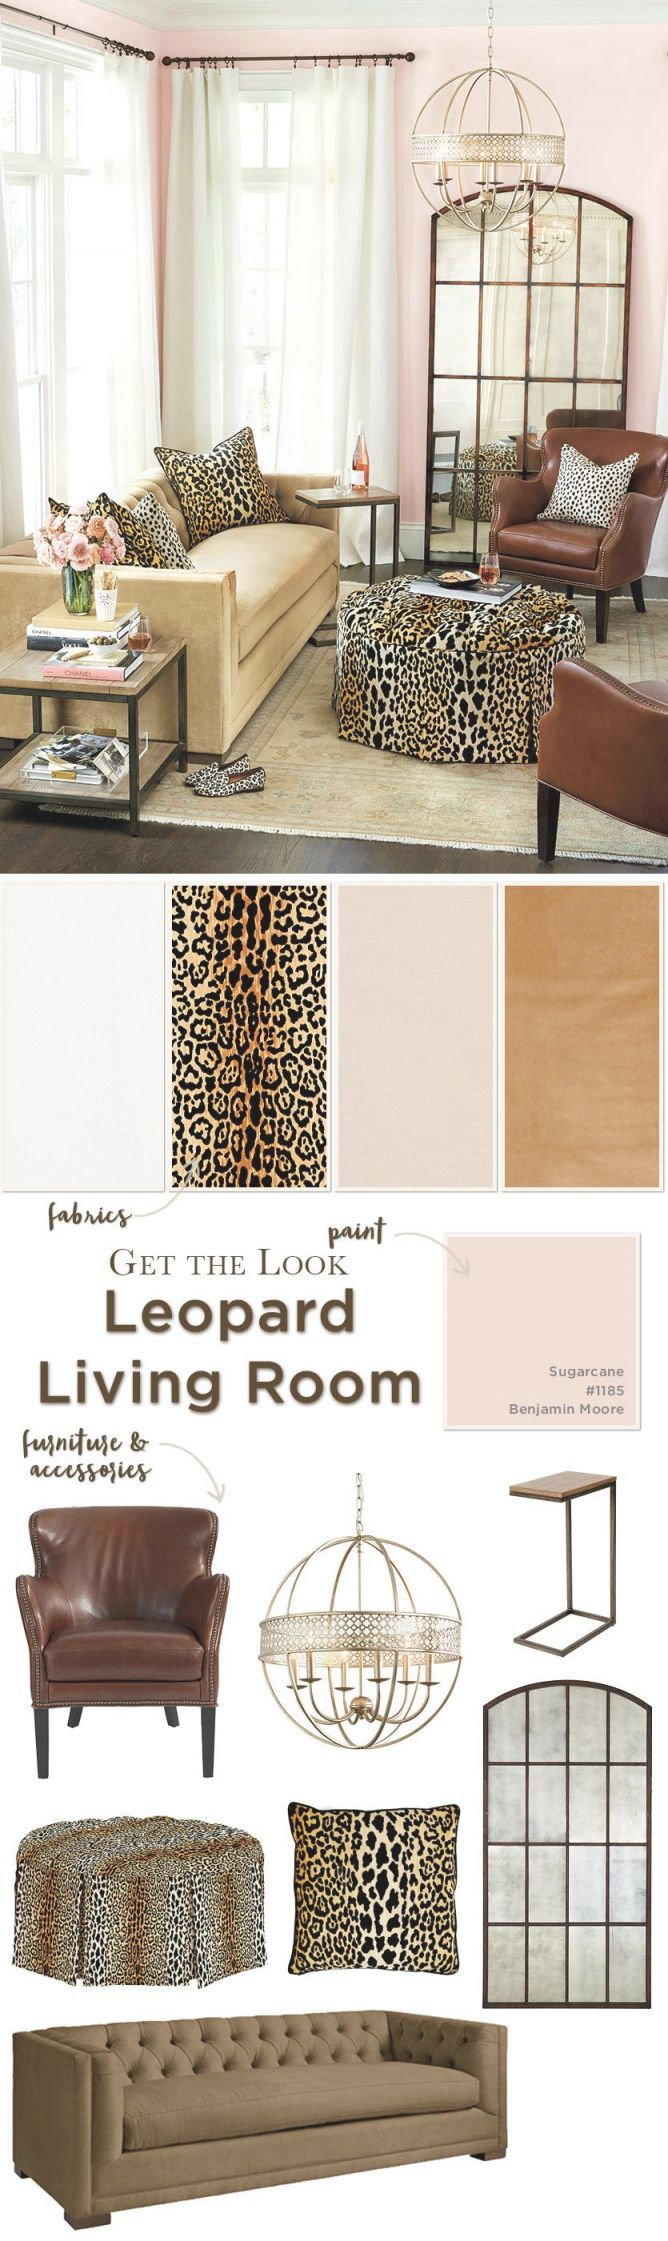 Get The Look: Leopard Living Room | Living Room Ideas for Unique Animal Print Living Room Decor